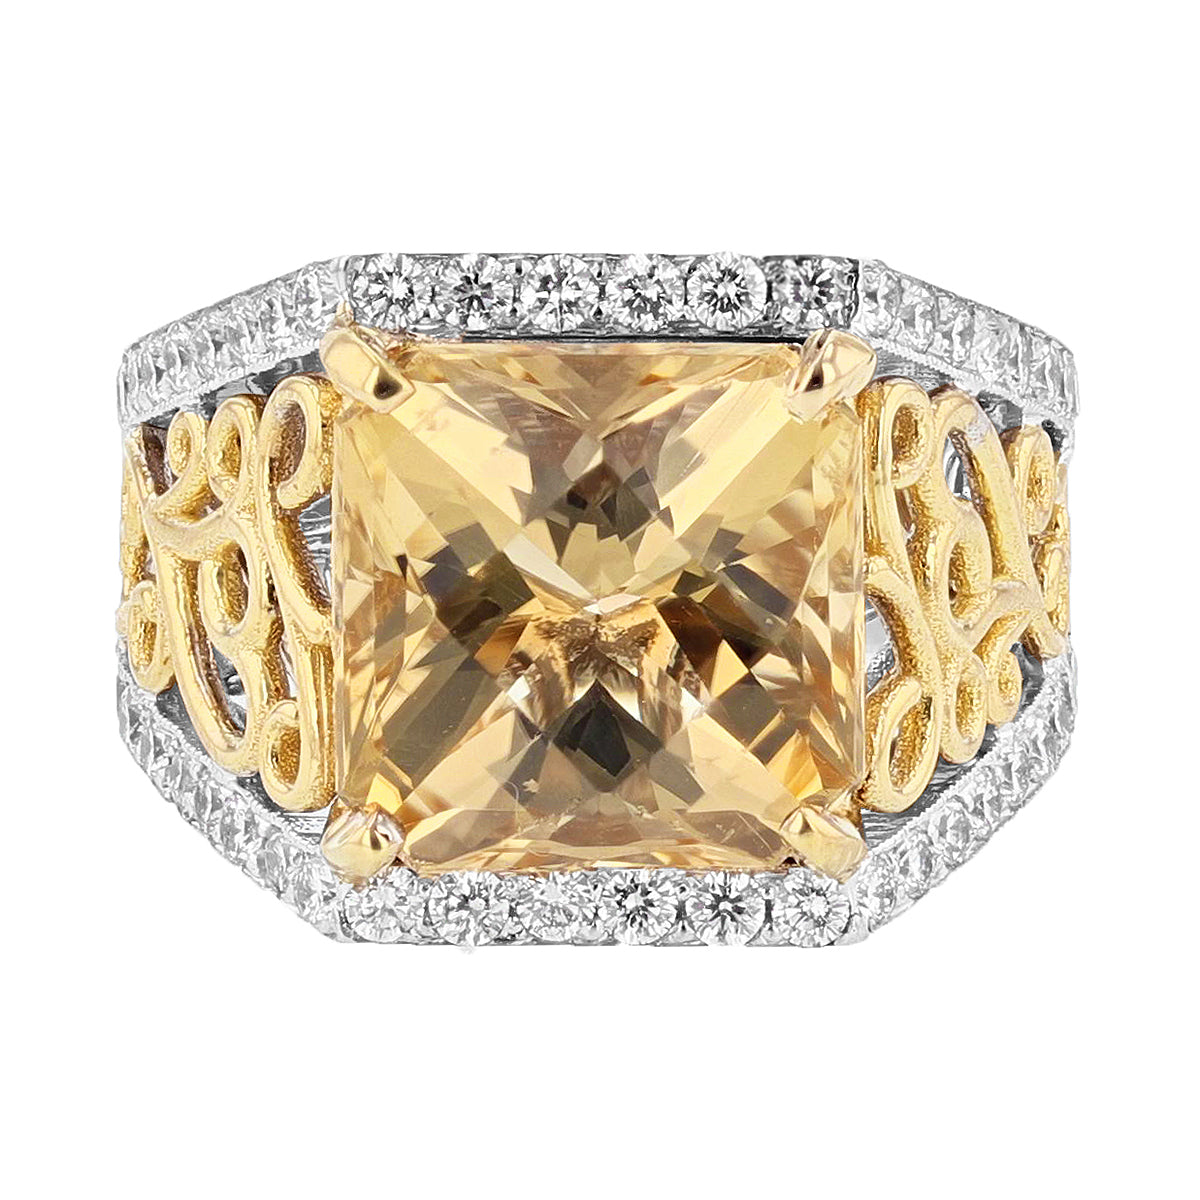 14K White and Yellow Gold Scapolite and Diamond Ring